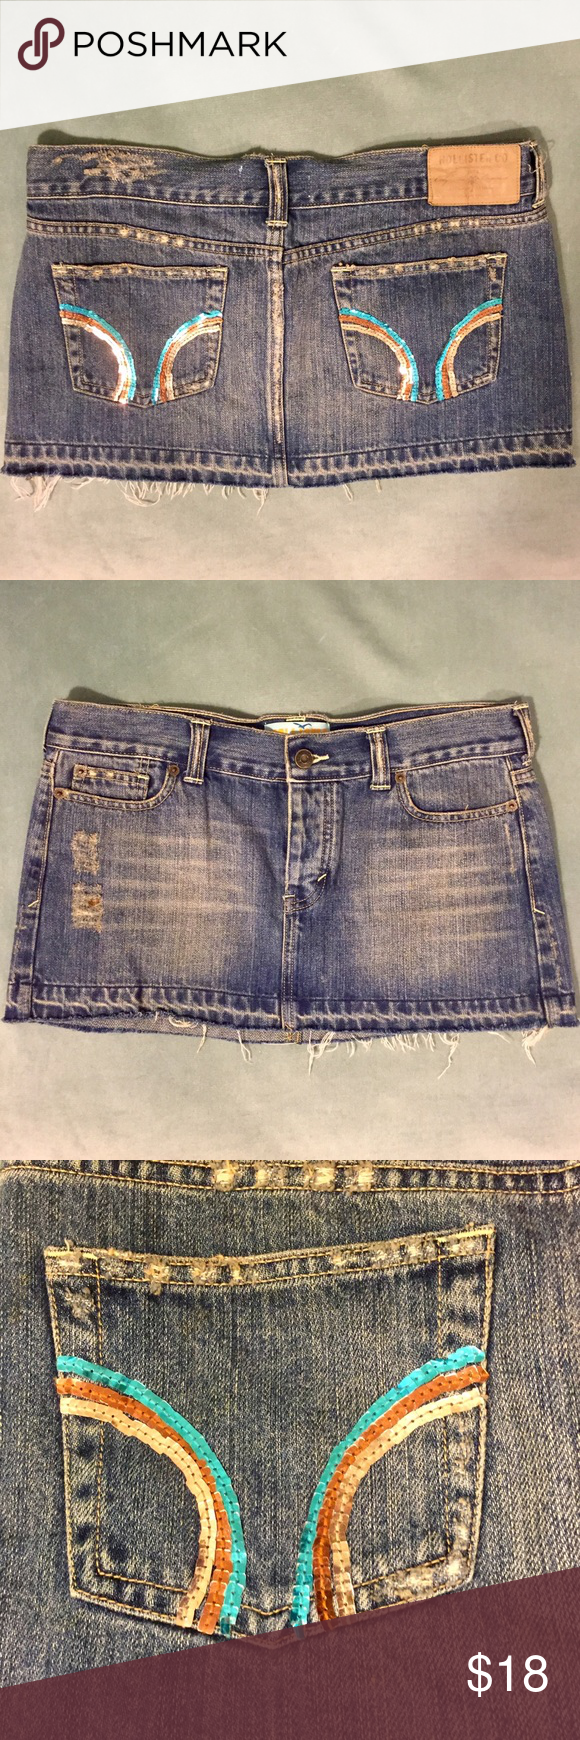 """Hollister Denim Mini Skirt OBO EUC! Front measures 11"""" from top to bottom. Back measures 11.5"""" from top to bottom. Hollister Skirts Mini"""